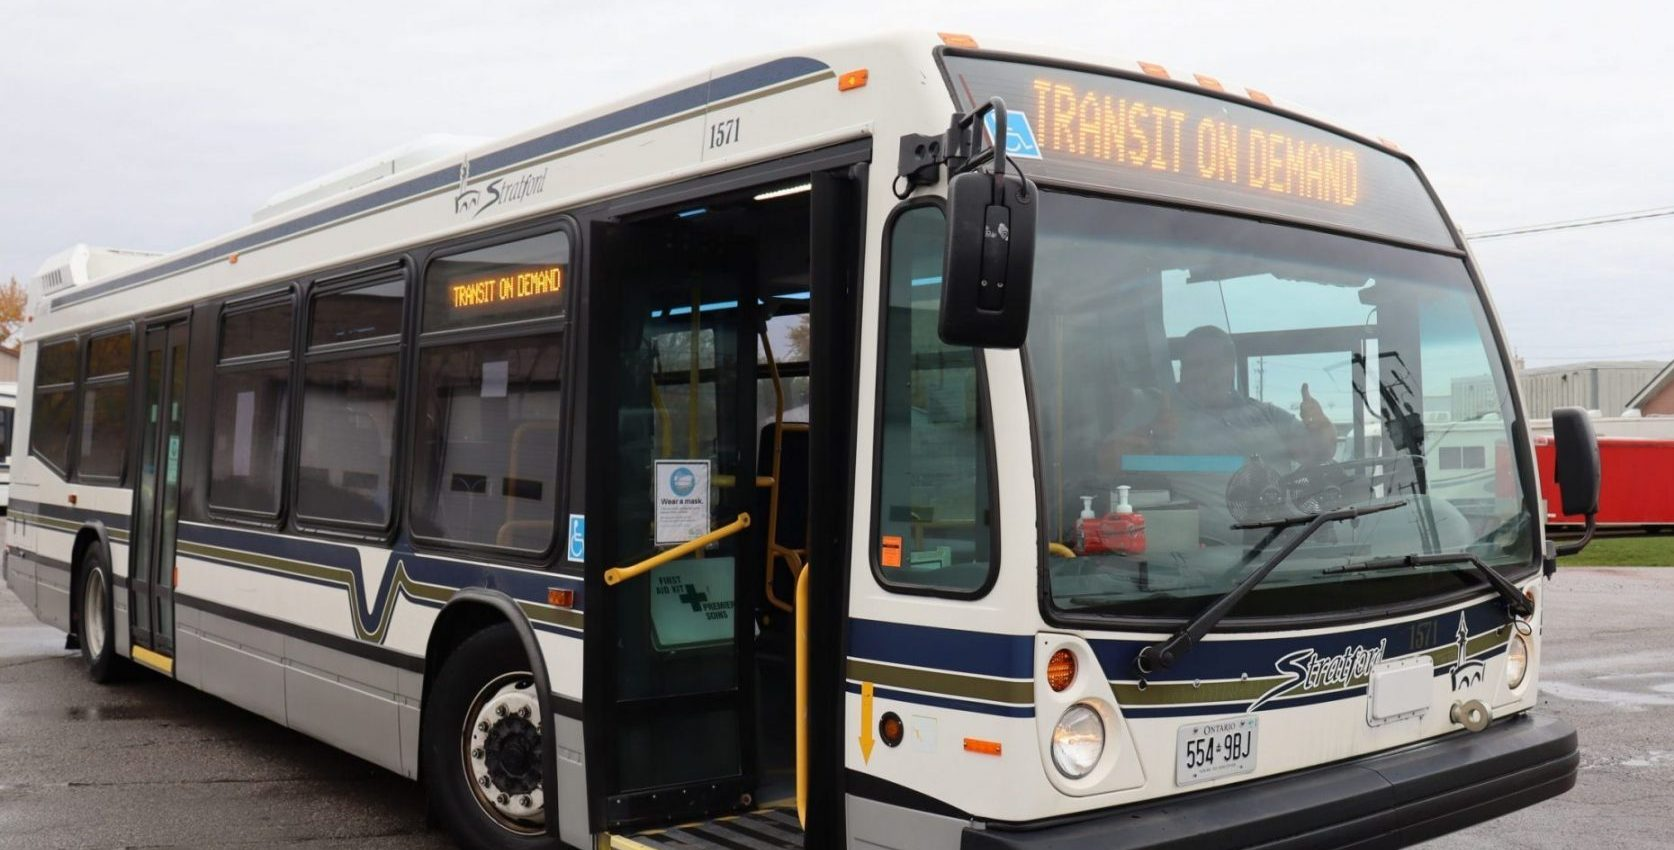 Incoming Funding an Opportunity for Transit Innovation